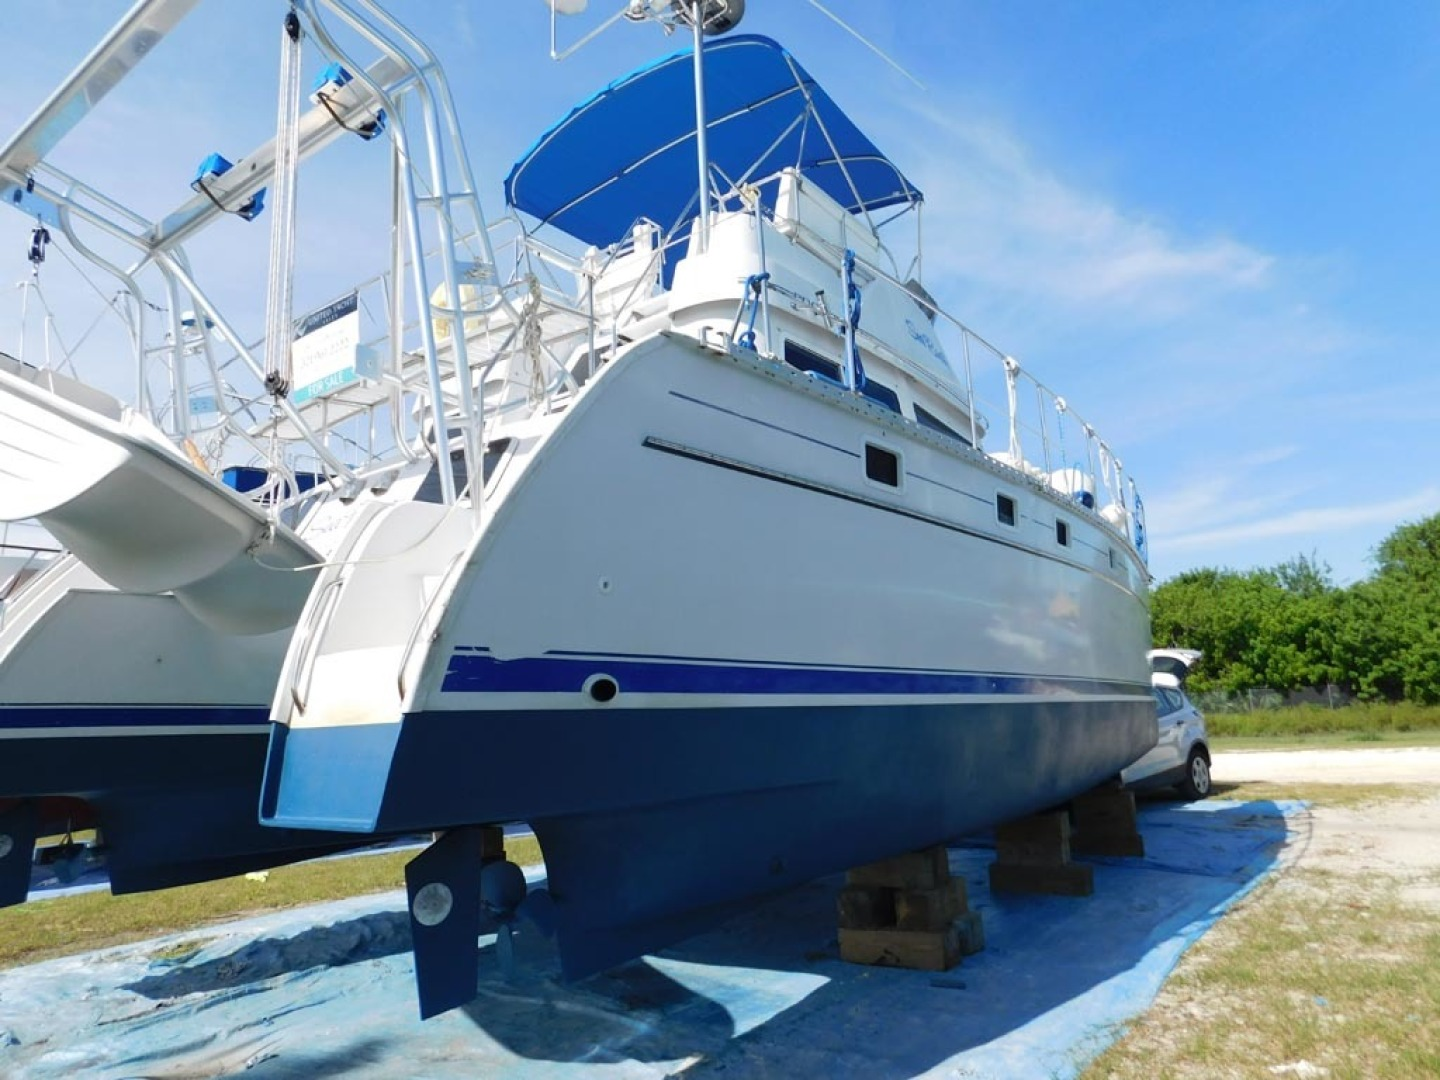 PDQ-Passage Maker 2005-Sea Renity Cocoa Beach-Florida-United States-Starboard Aft Hull-1468281 | Thumbnail